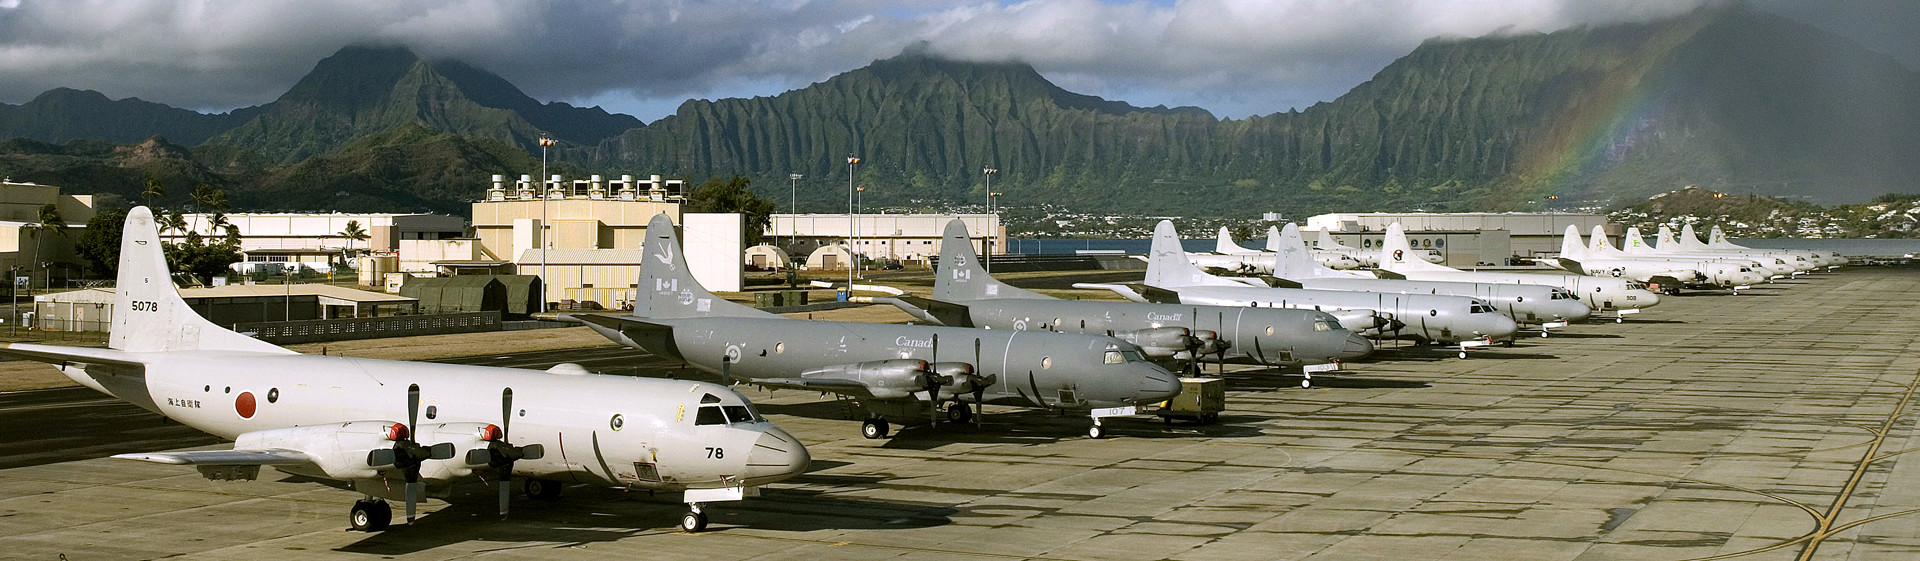 Hawaii Airfield